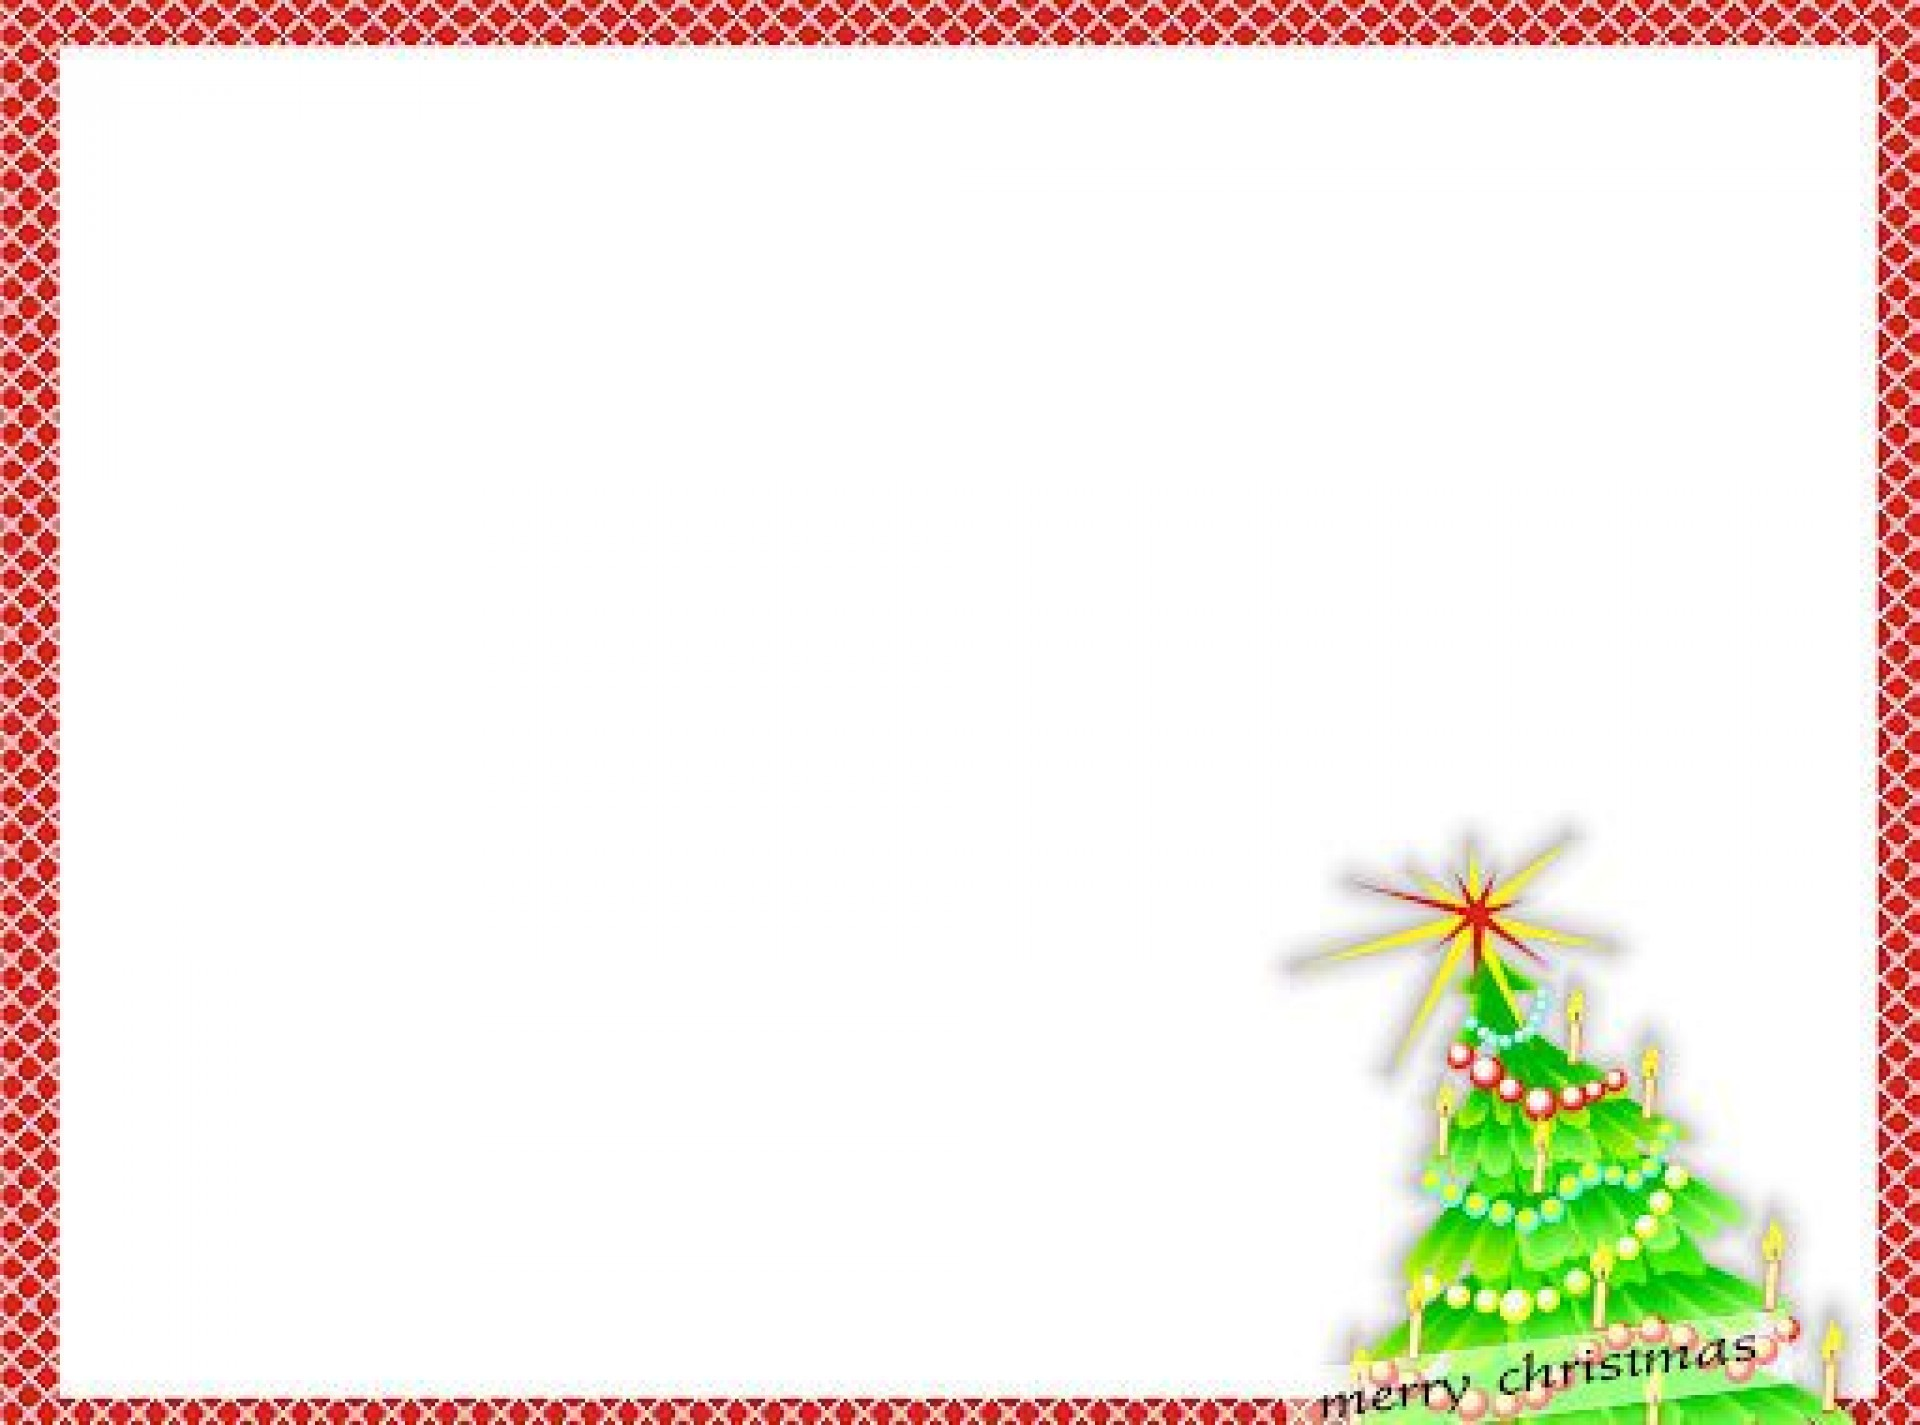 009 Breathtaking Free Christma Template For Word Photo  Holiday Party Invitation Recipe Card Printable Stationery1920